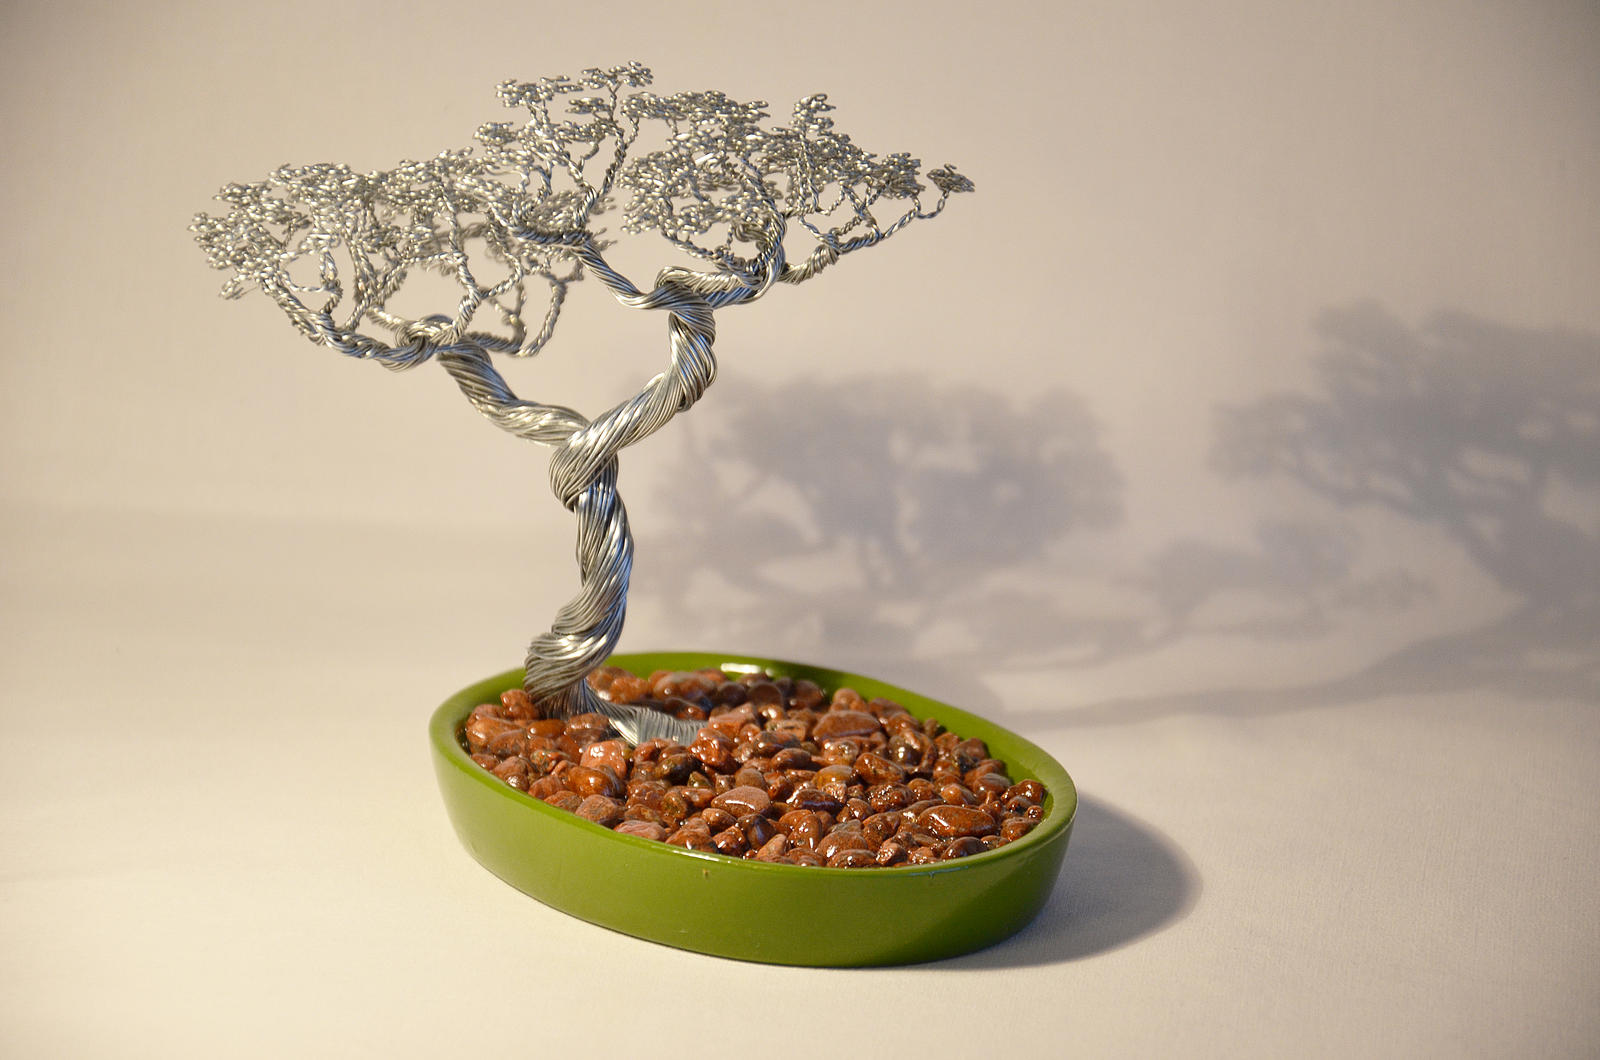 bonsai wire tree sculpture by minskis on deviantart rh minskis deviantart com Japanese Bonsai Trees Bonsai Wire Sizes